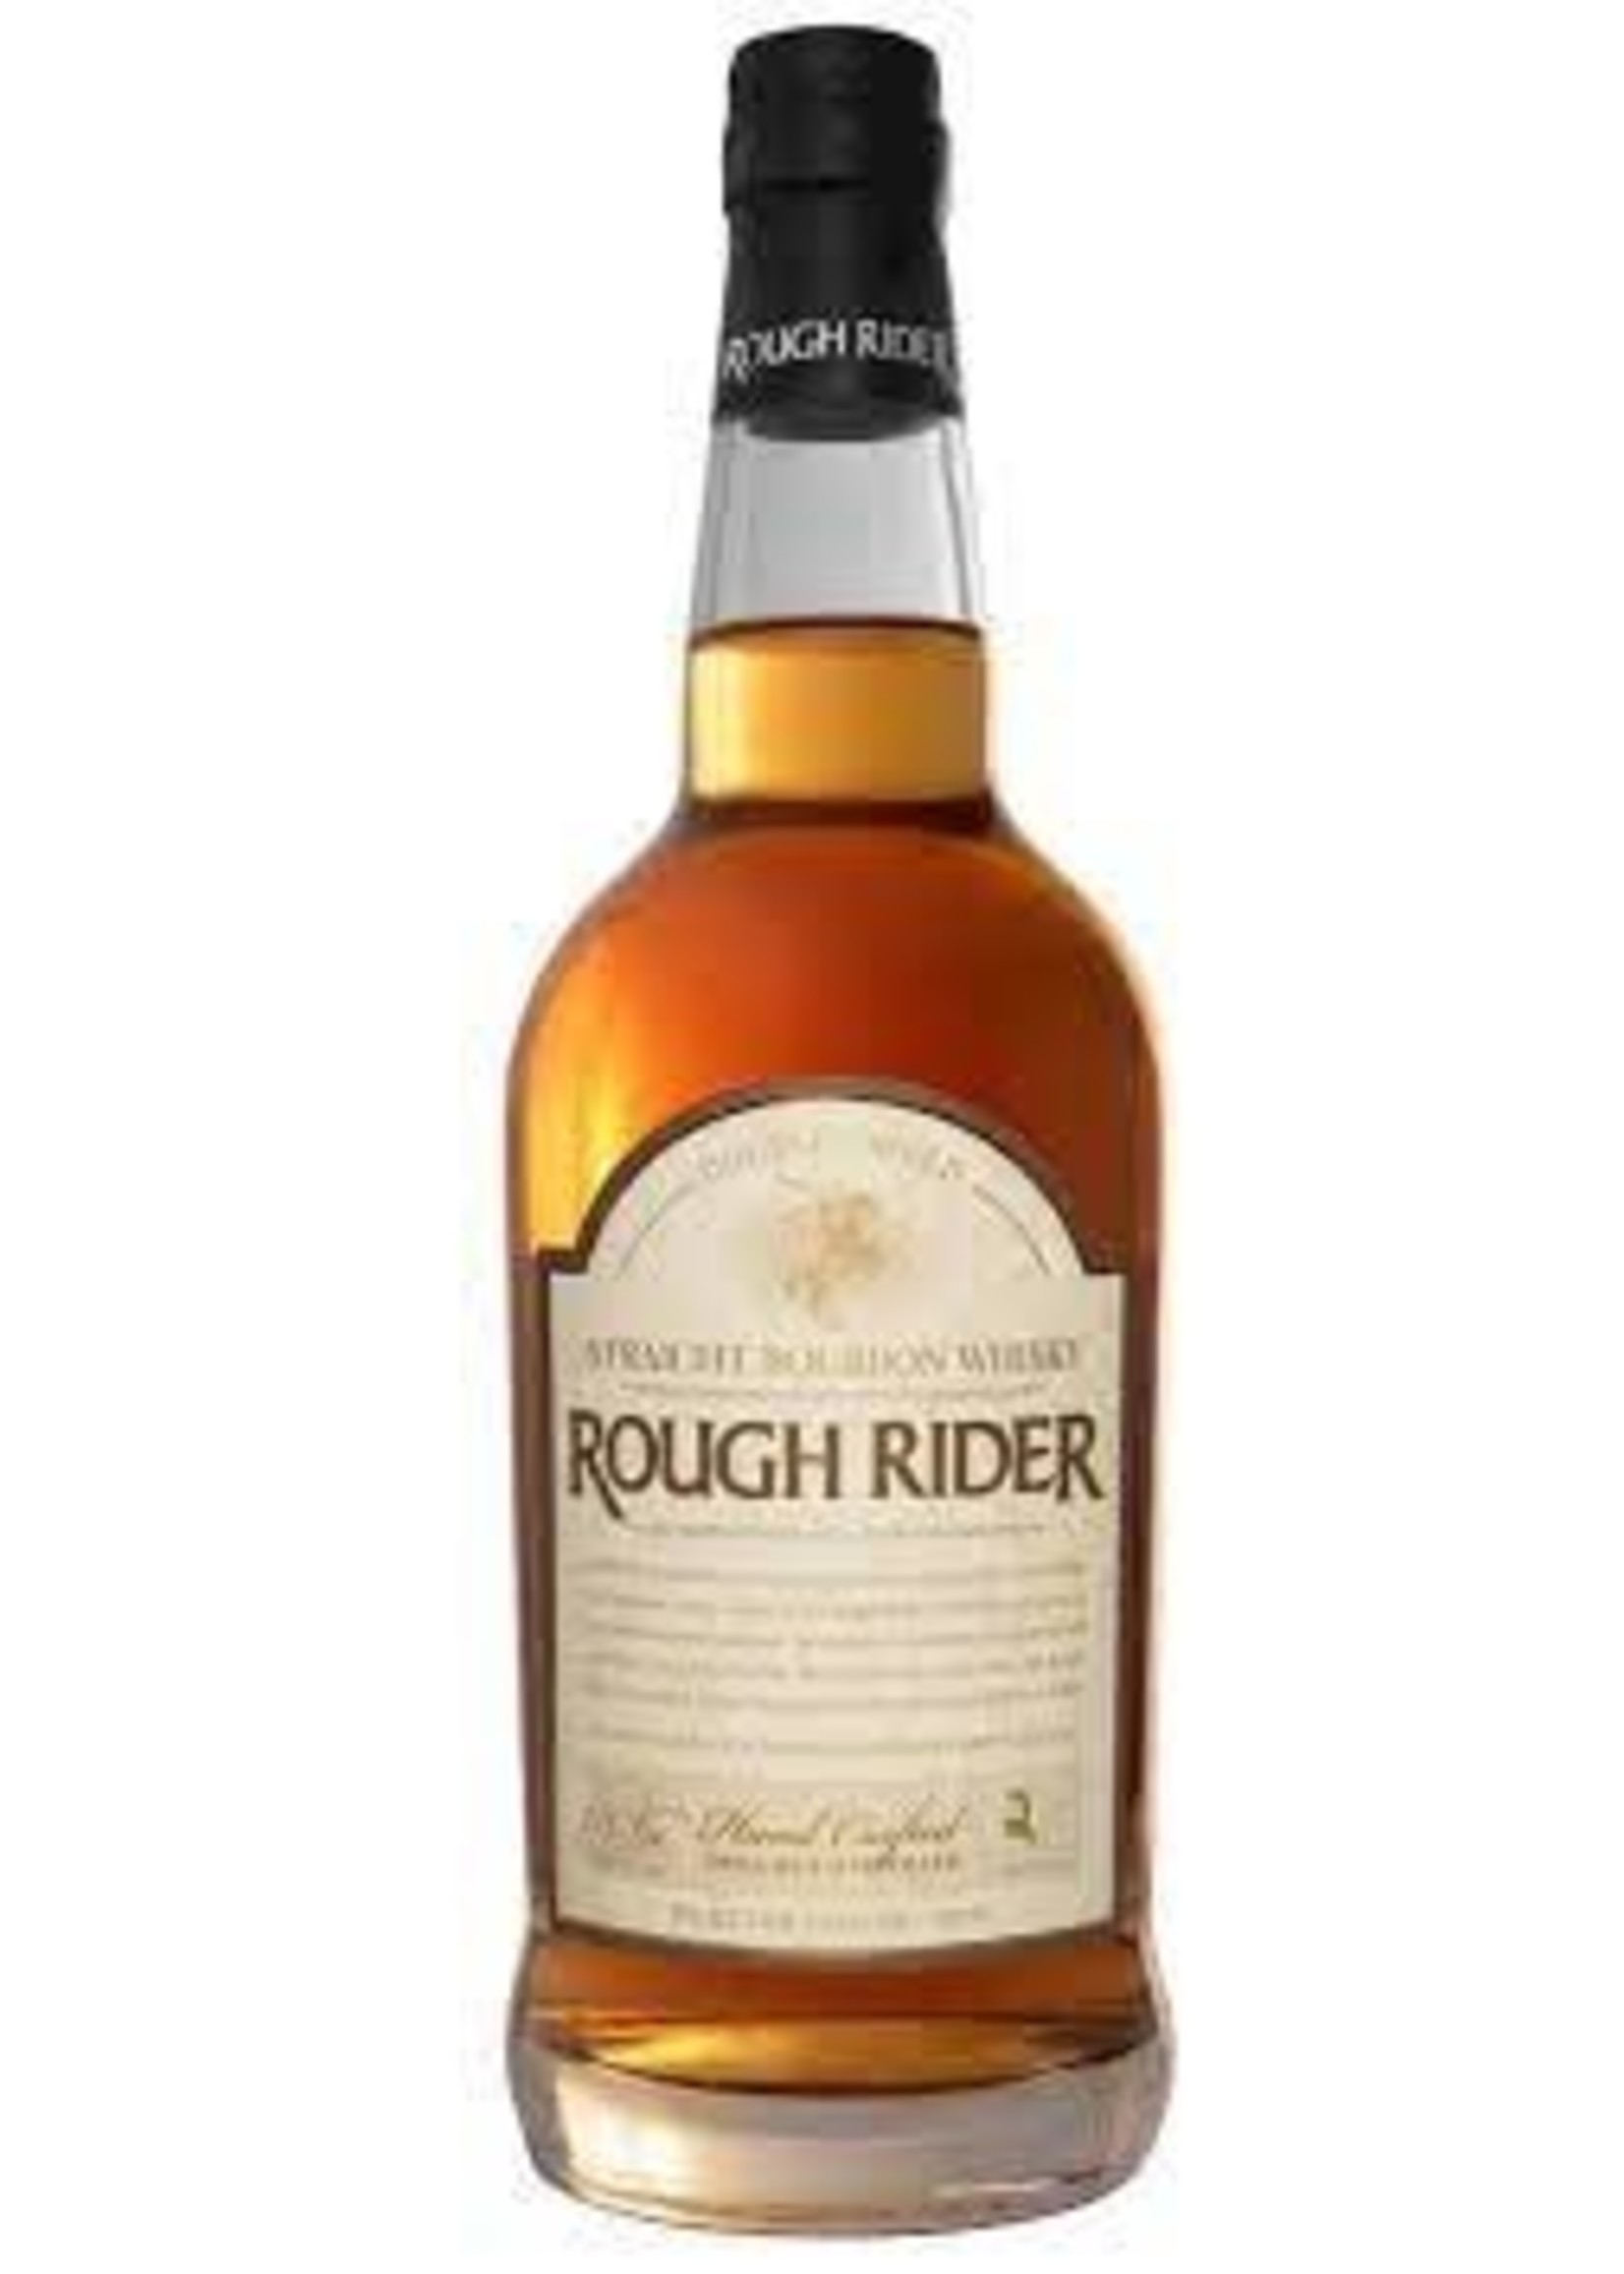 Rough Rider Double Casked Bourbon Whisky 750ml